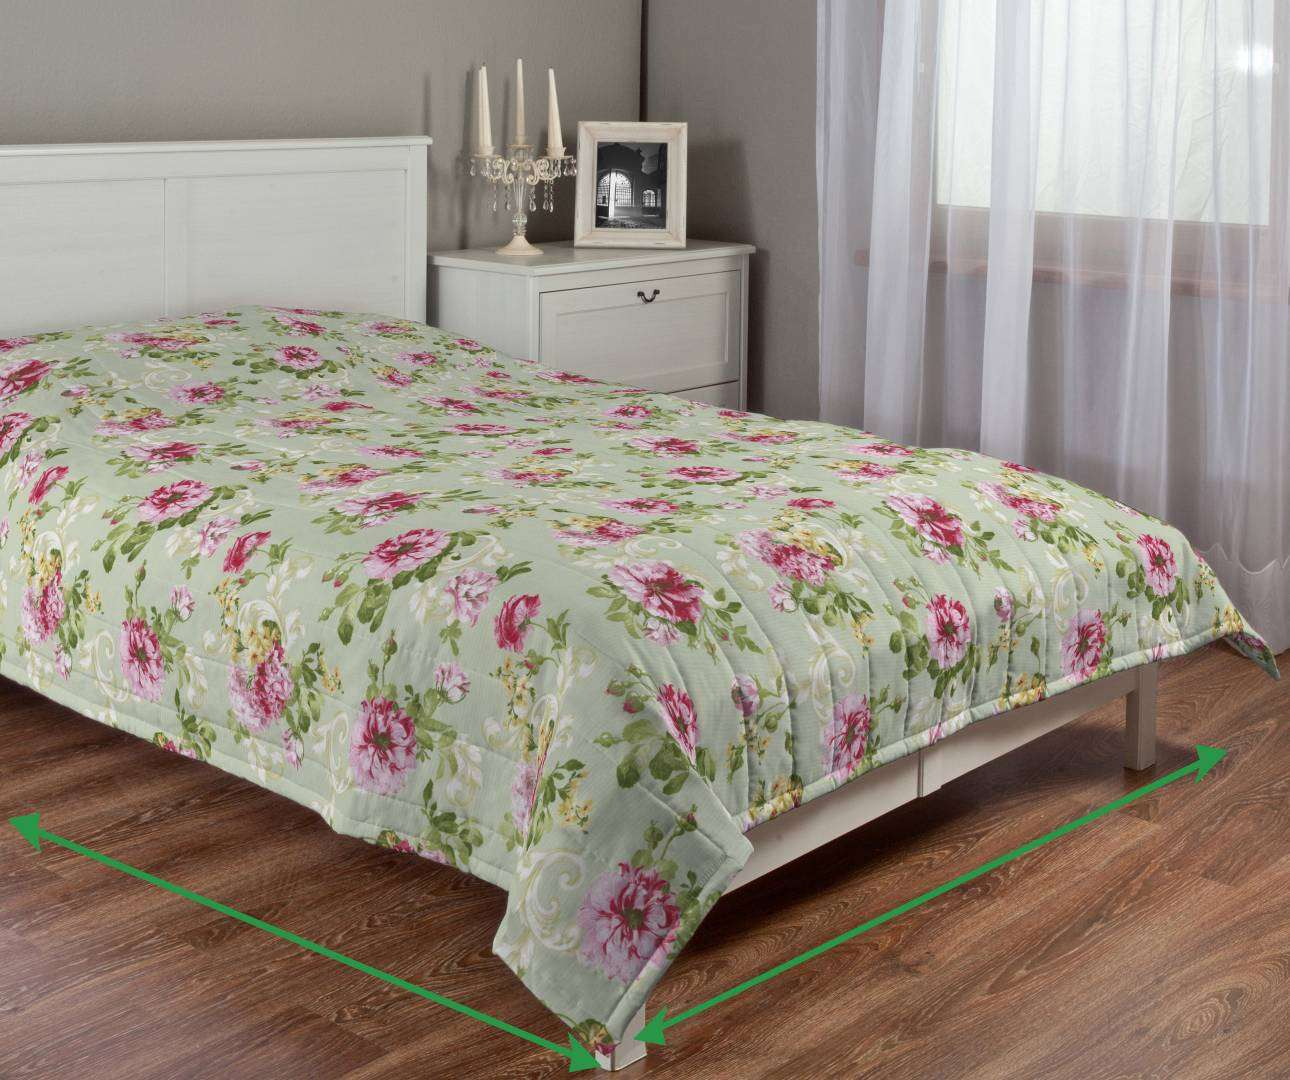 Quilted throw (vertical quilt pattern) in collection Flowers, fabric: 311-10